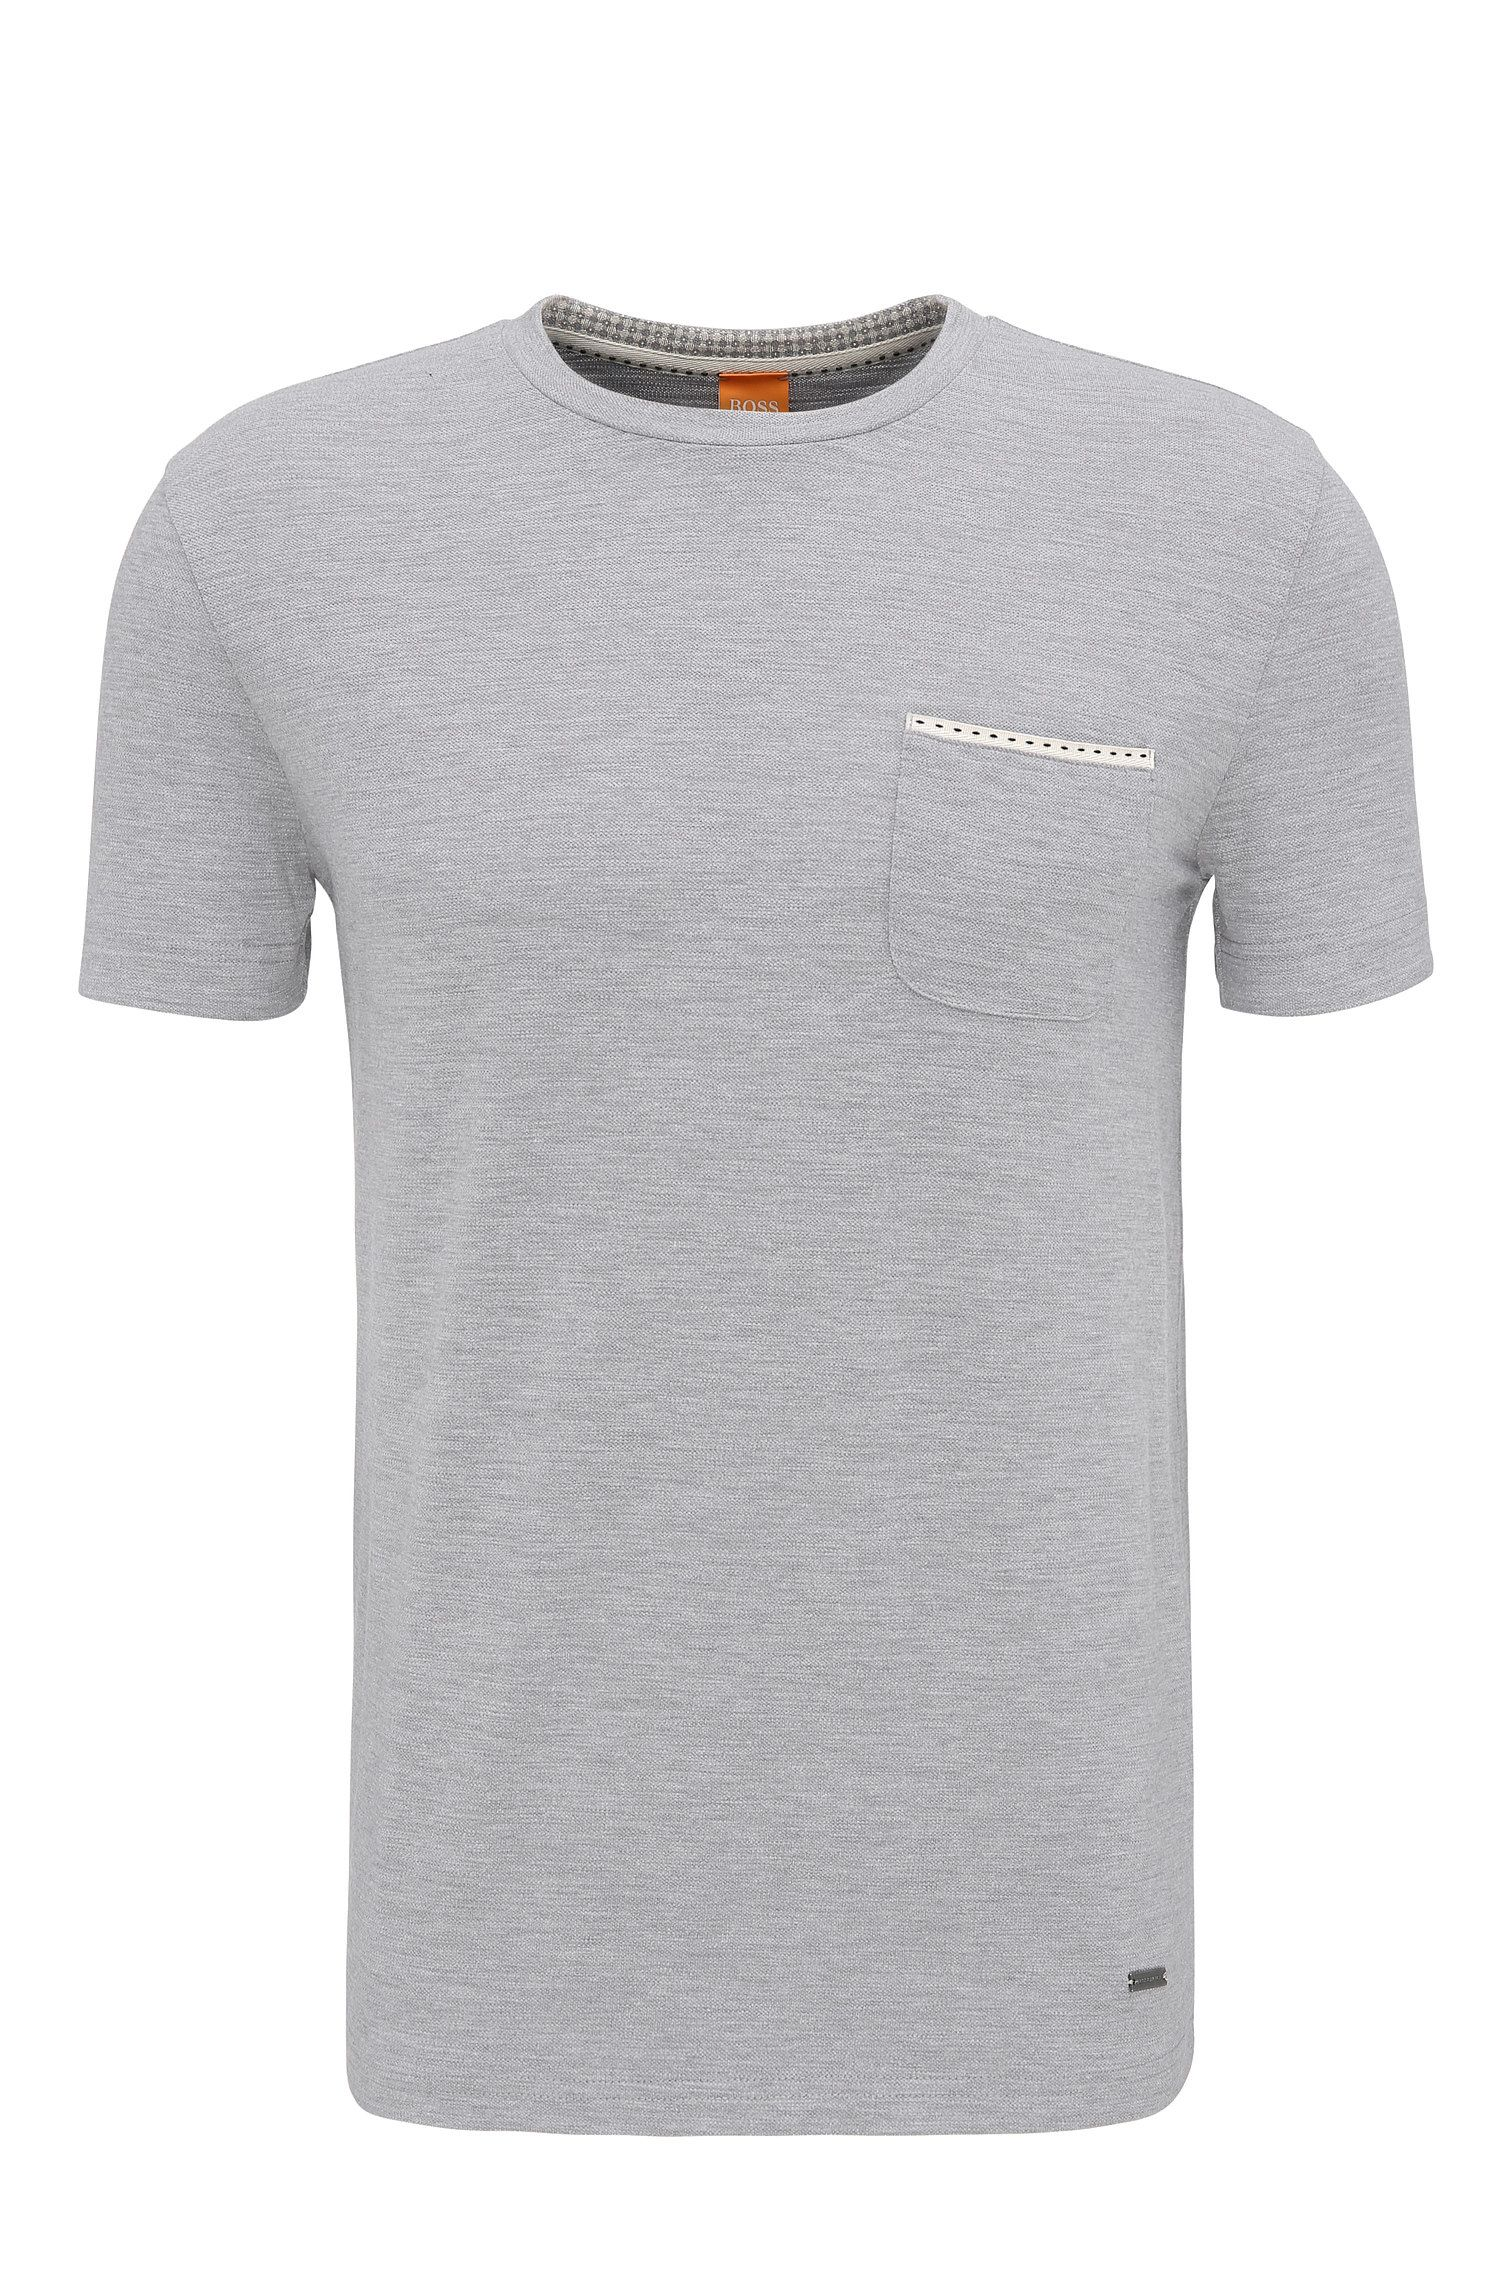 Camiseta relaxed fit en punto sencillo